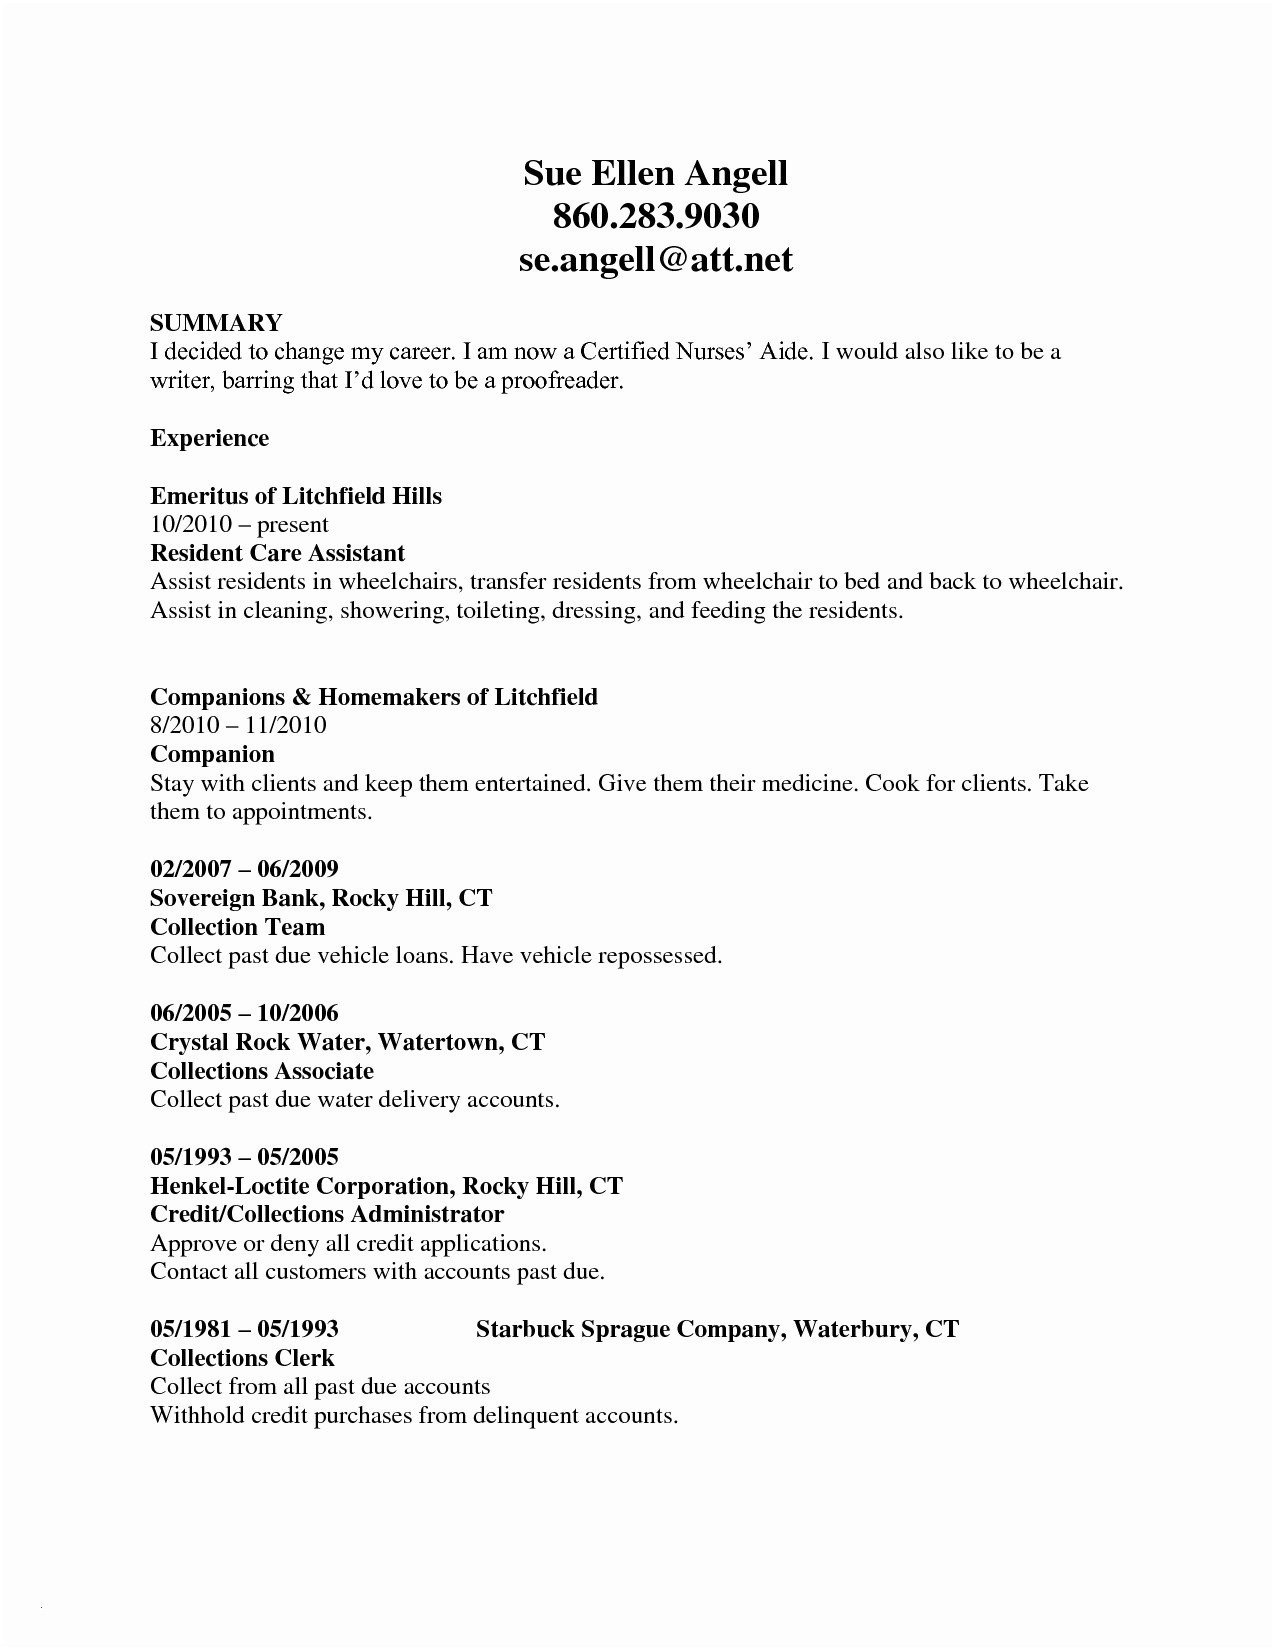 Nurse Resume Template Word - Nursing Resume Template Word Best Nursing Resume Templates Word